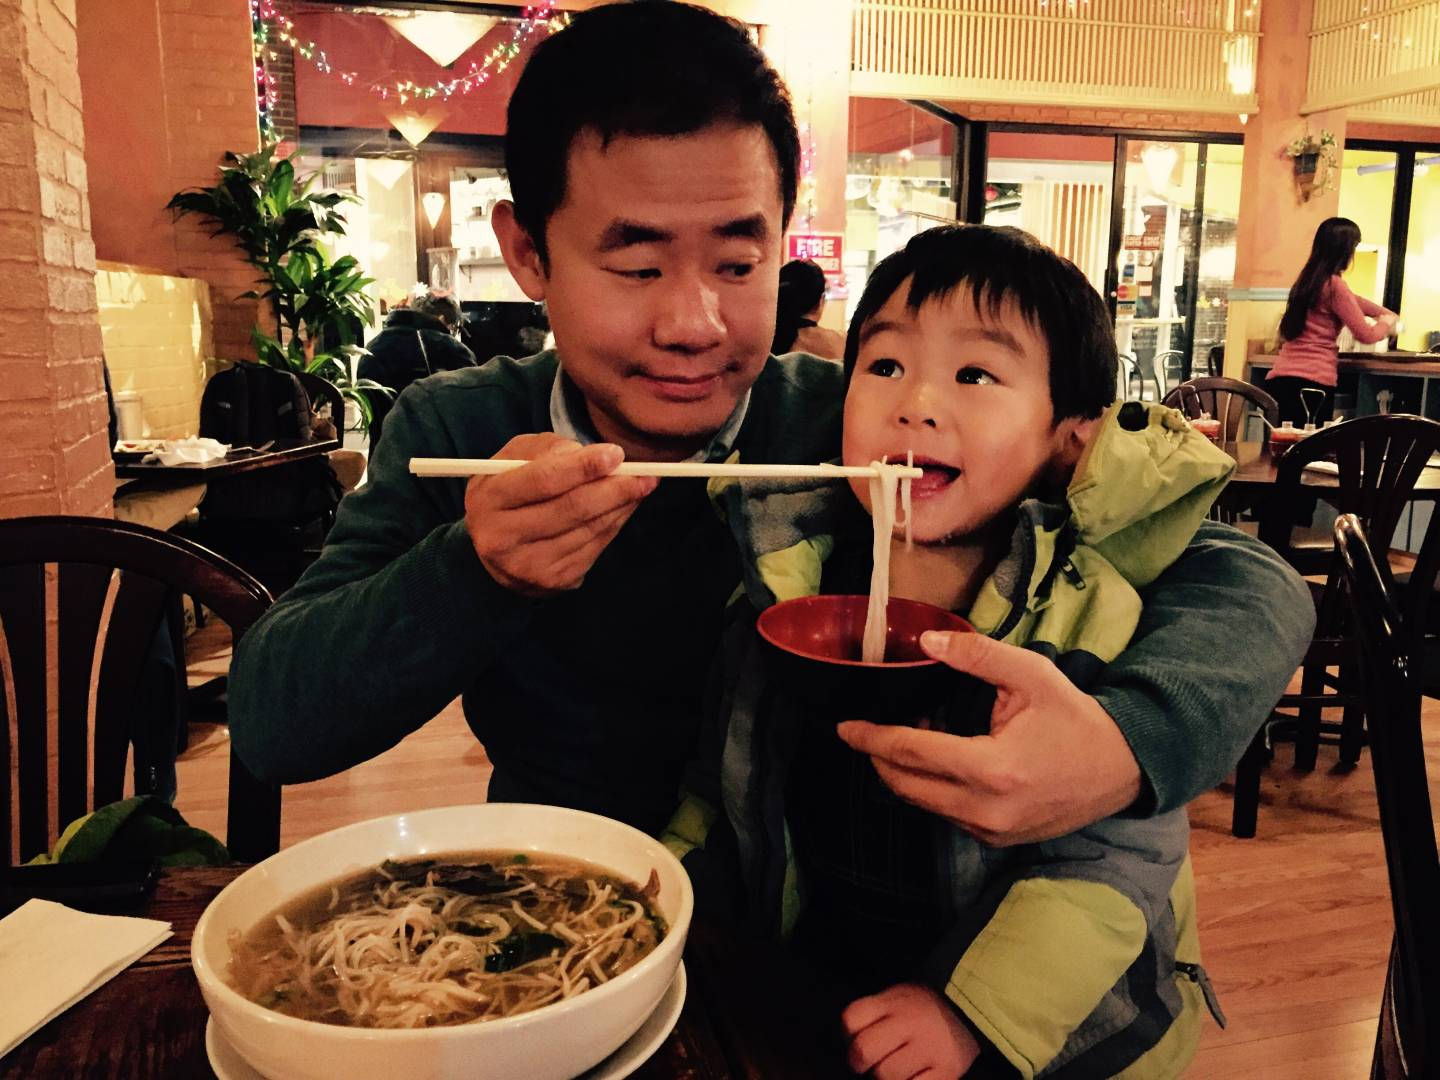 Wang enjoys a meal of noodles with his young son.